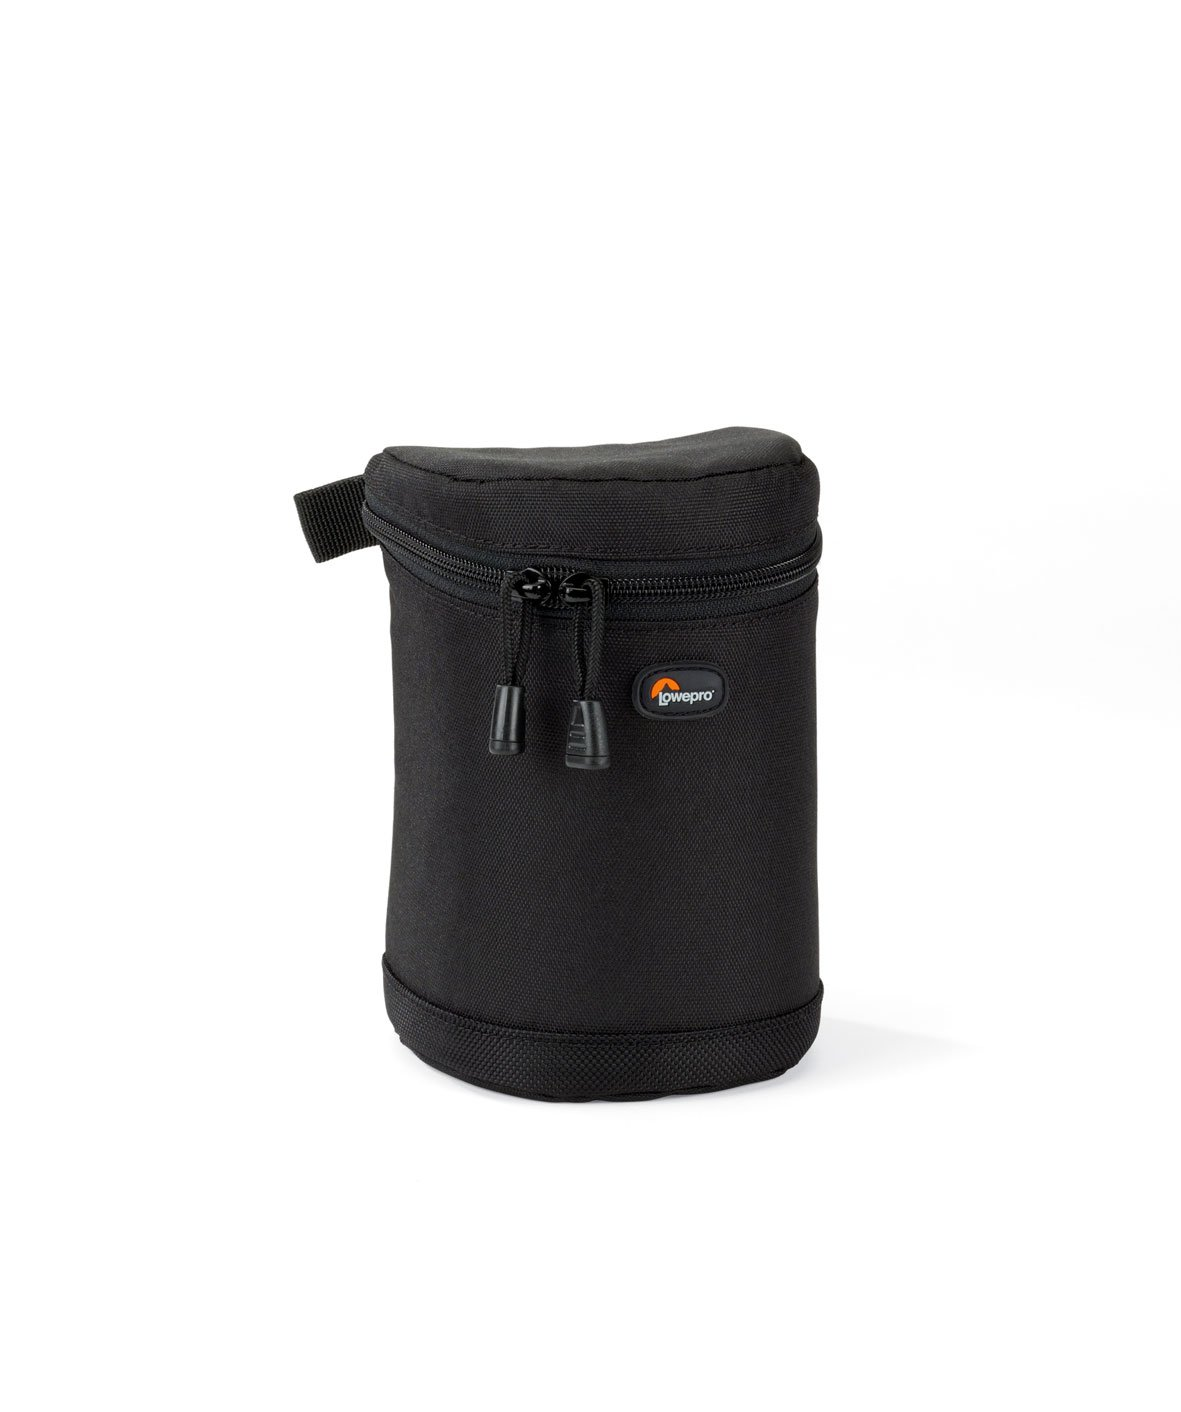 Lowepro Lens Case 9 x 13 cm (Black) by Lowepro